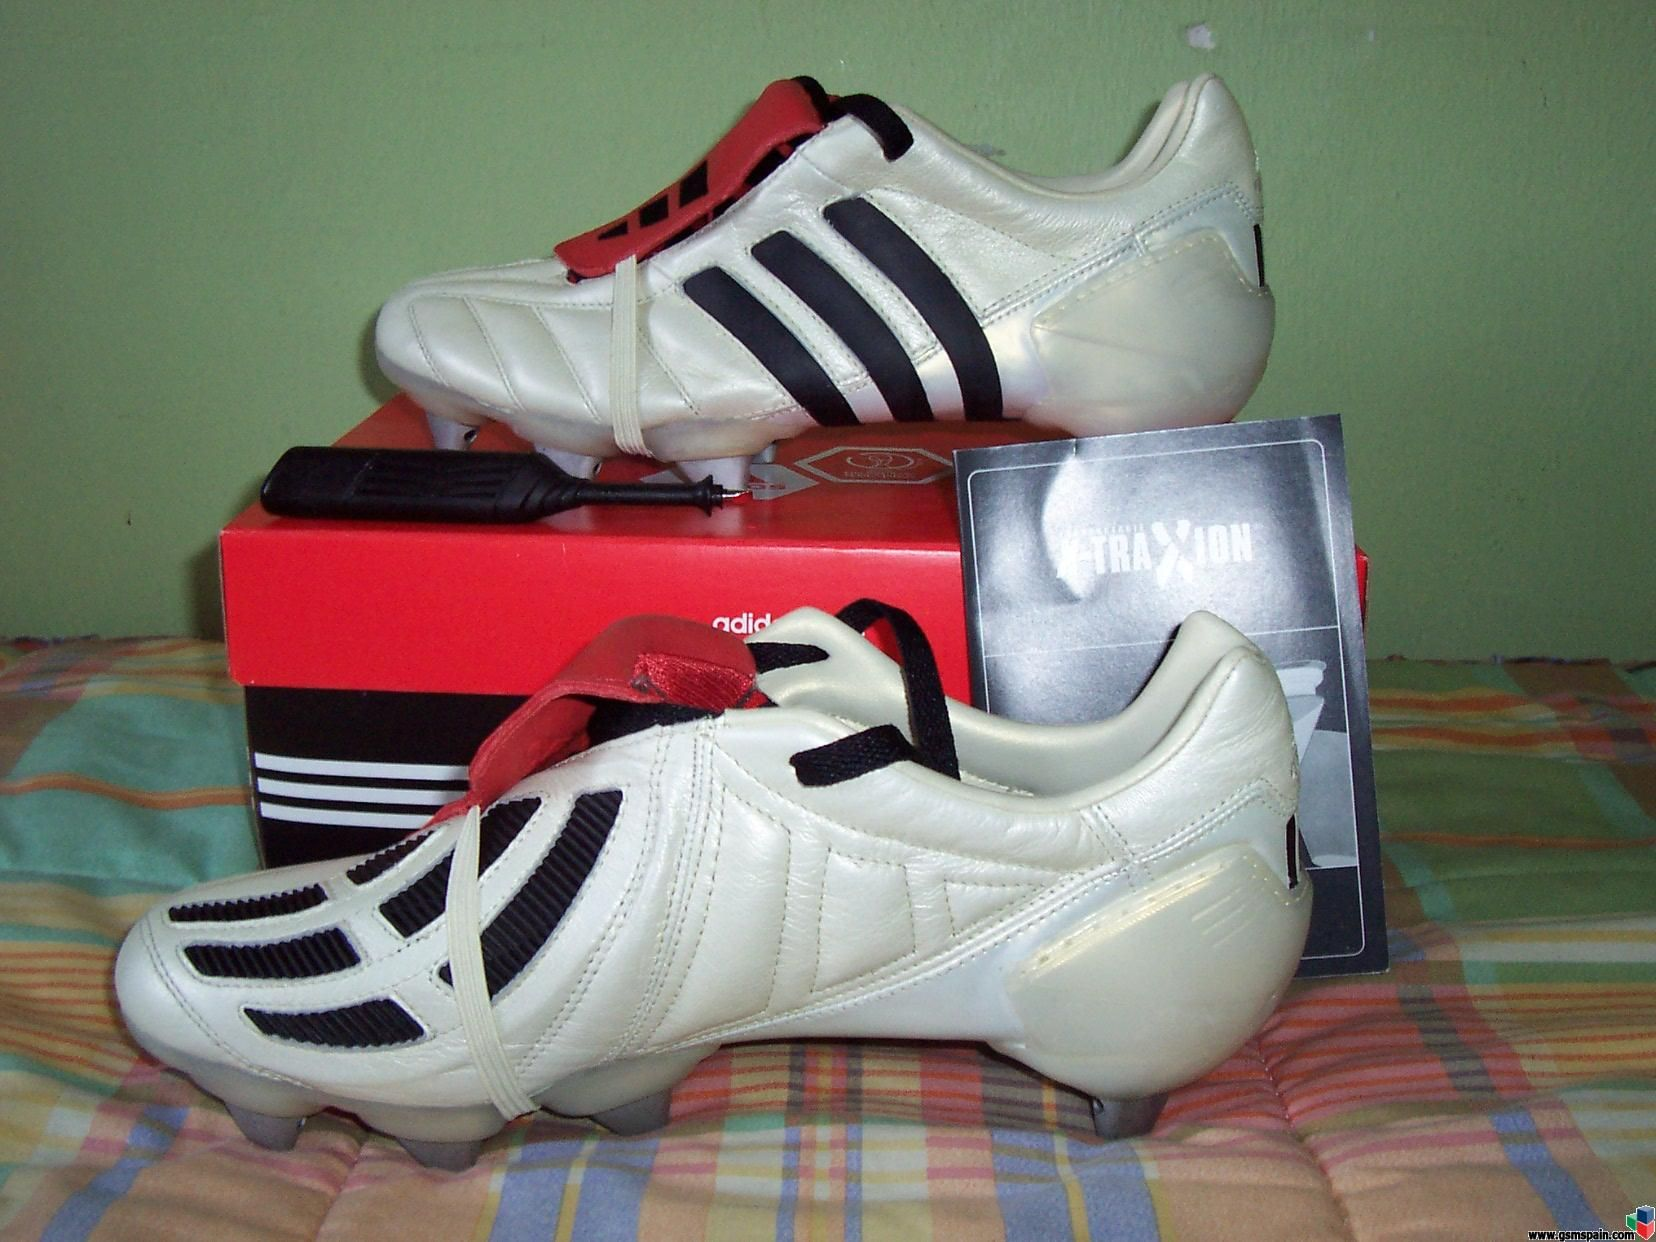 Adidas Predator Mania - I will have a pair of these.  97cbb2a373939